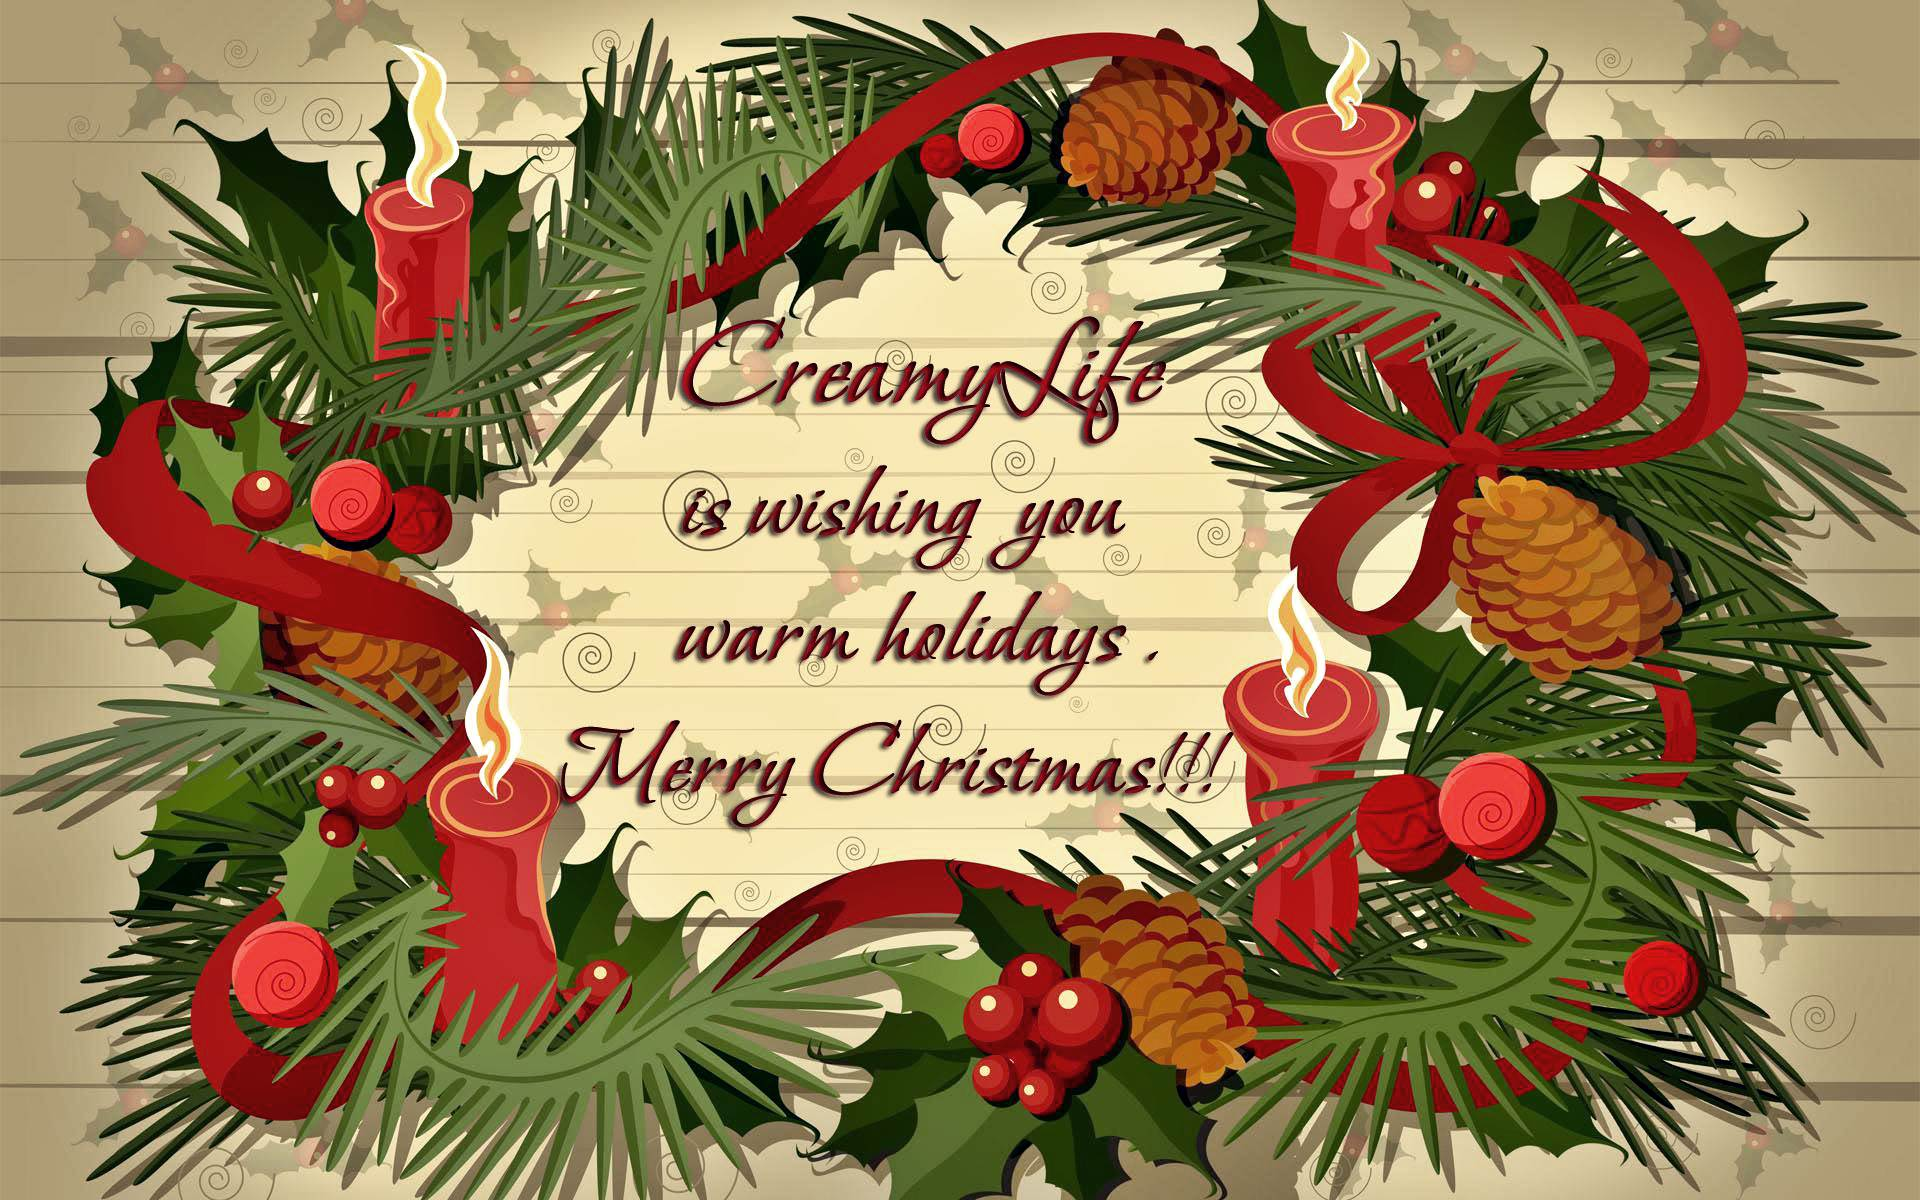 Christmas Quotes And Graphics: Christmas Day Greetings